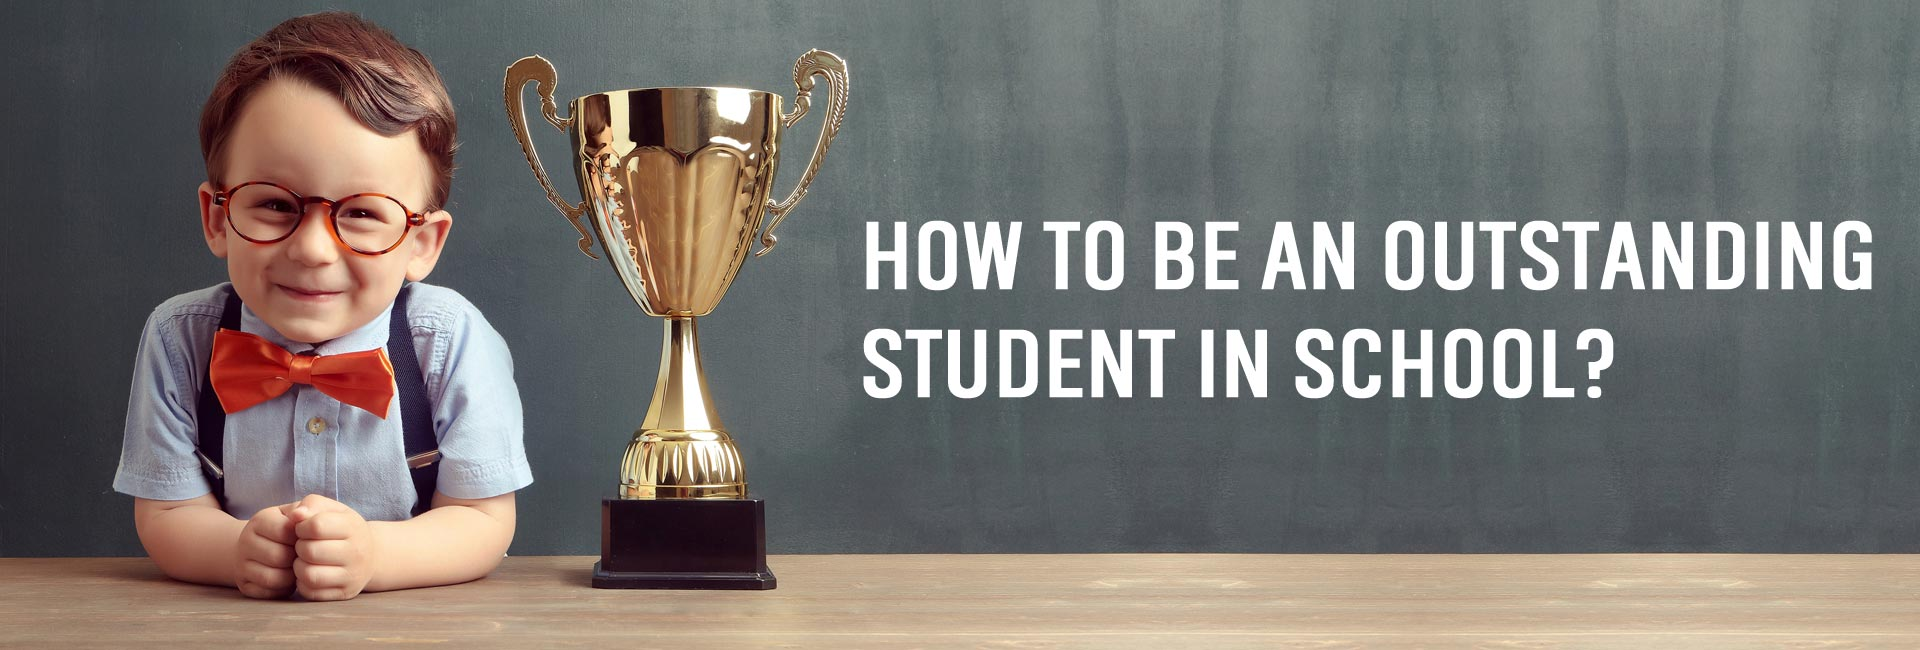 How To Be An Outstanding Student In School